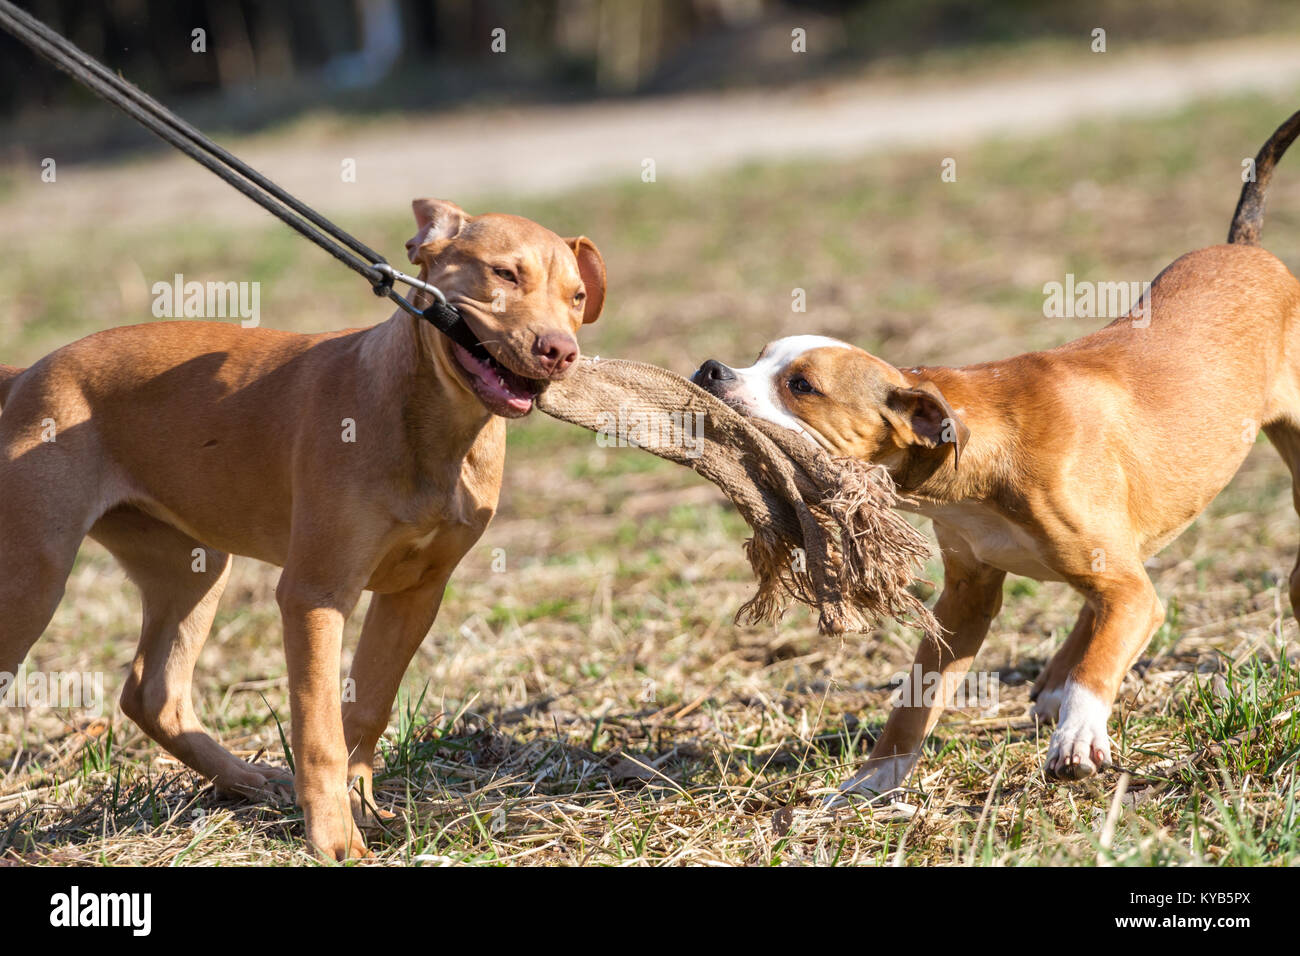 Two young puppies (Working Pit Bulldog & American Pit Bull Terrier) playing and tugging with a toy on a nice - Stock Image